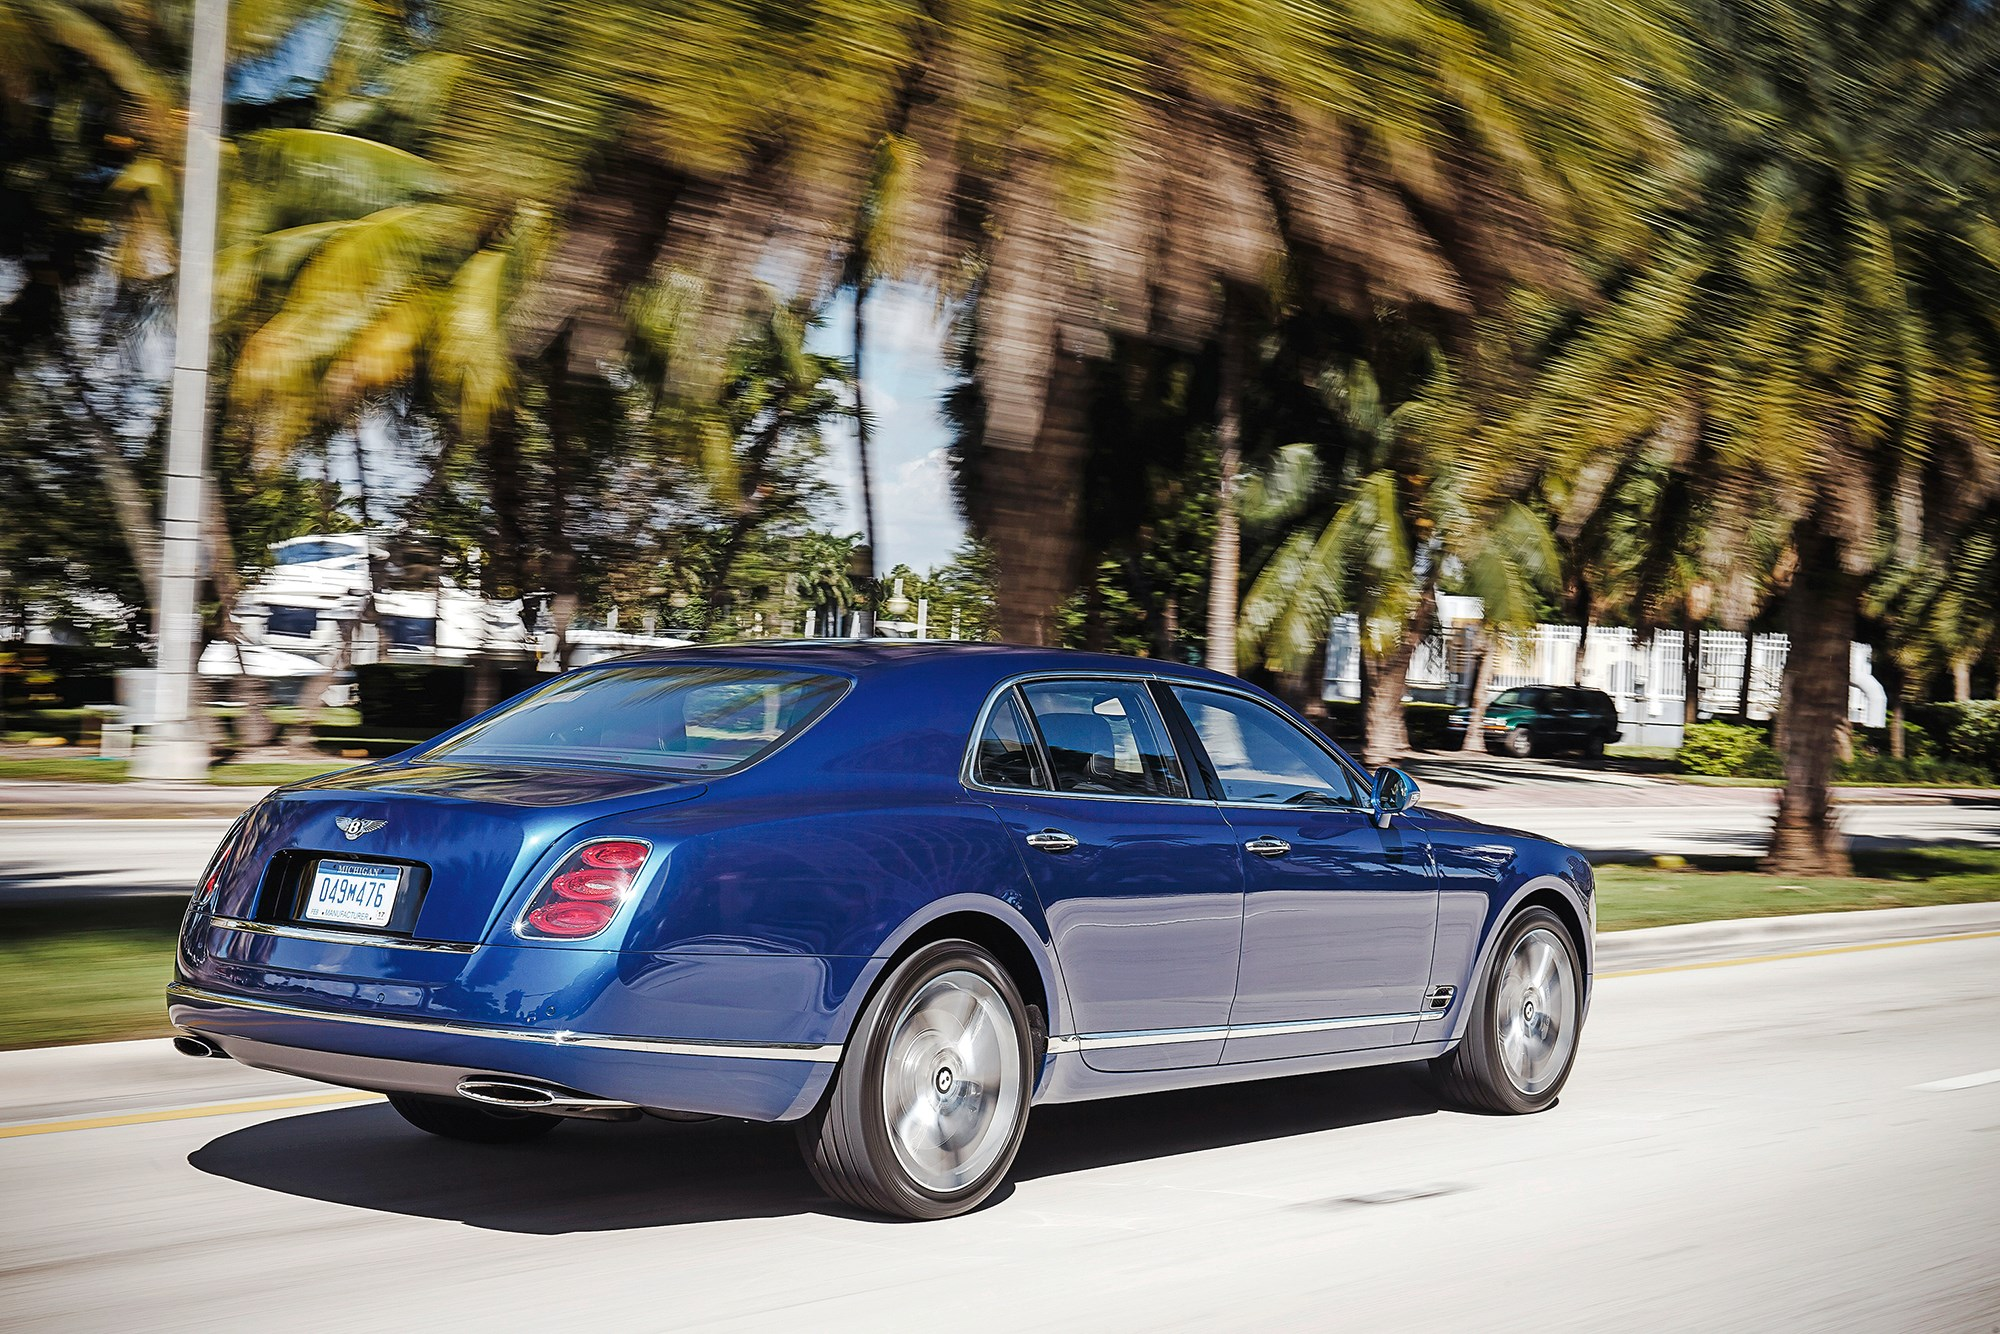 Bentley mulsanne speed 2015 review by car magazine bentley mulsanne looks every one of its 5575 millimetres vanachro Image collections